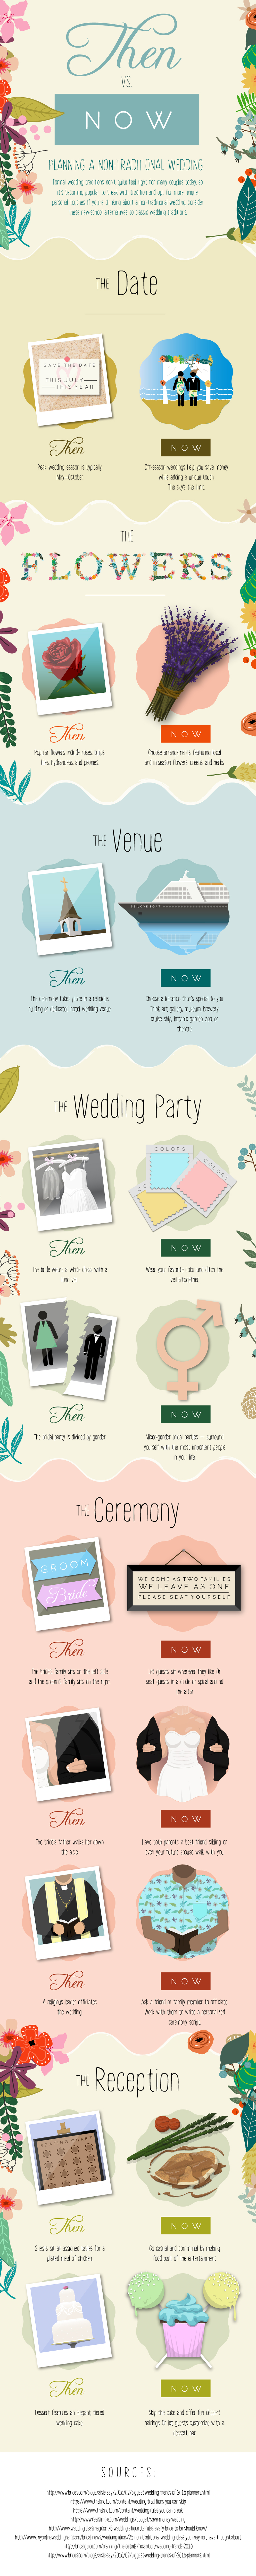 Then vs. Now: Planning a Non-Traditional Wedding